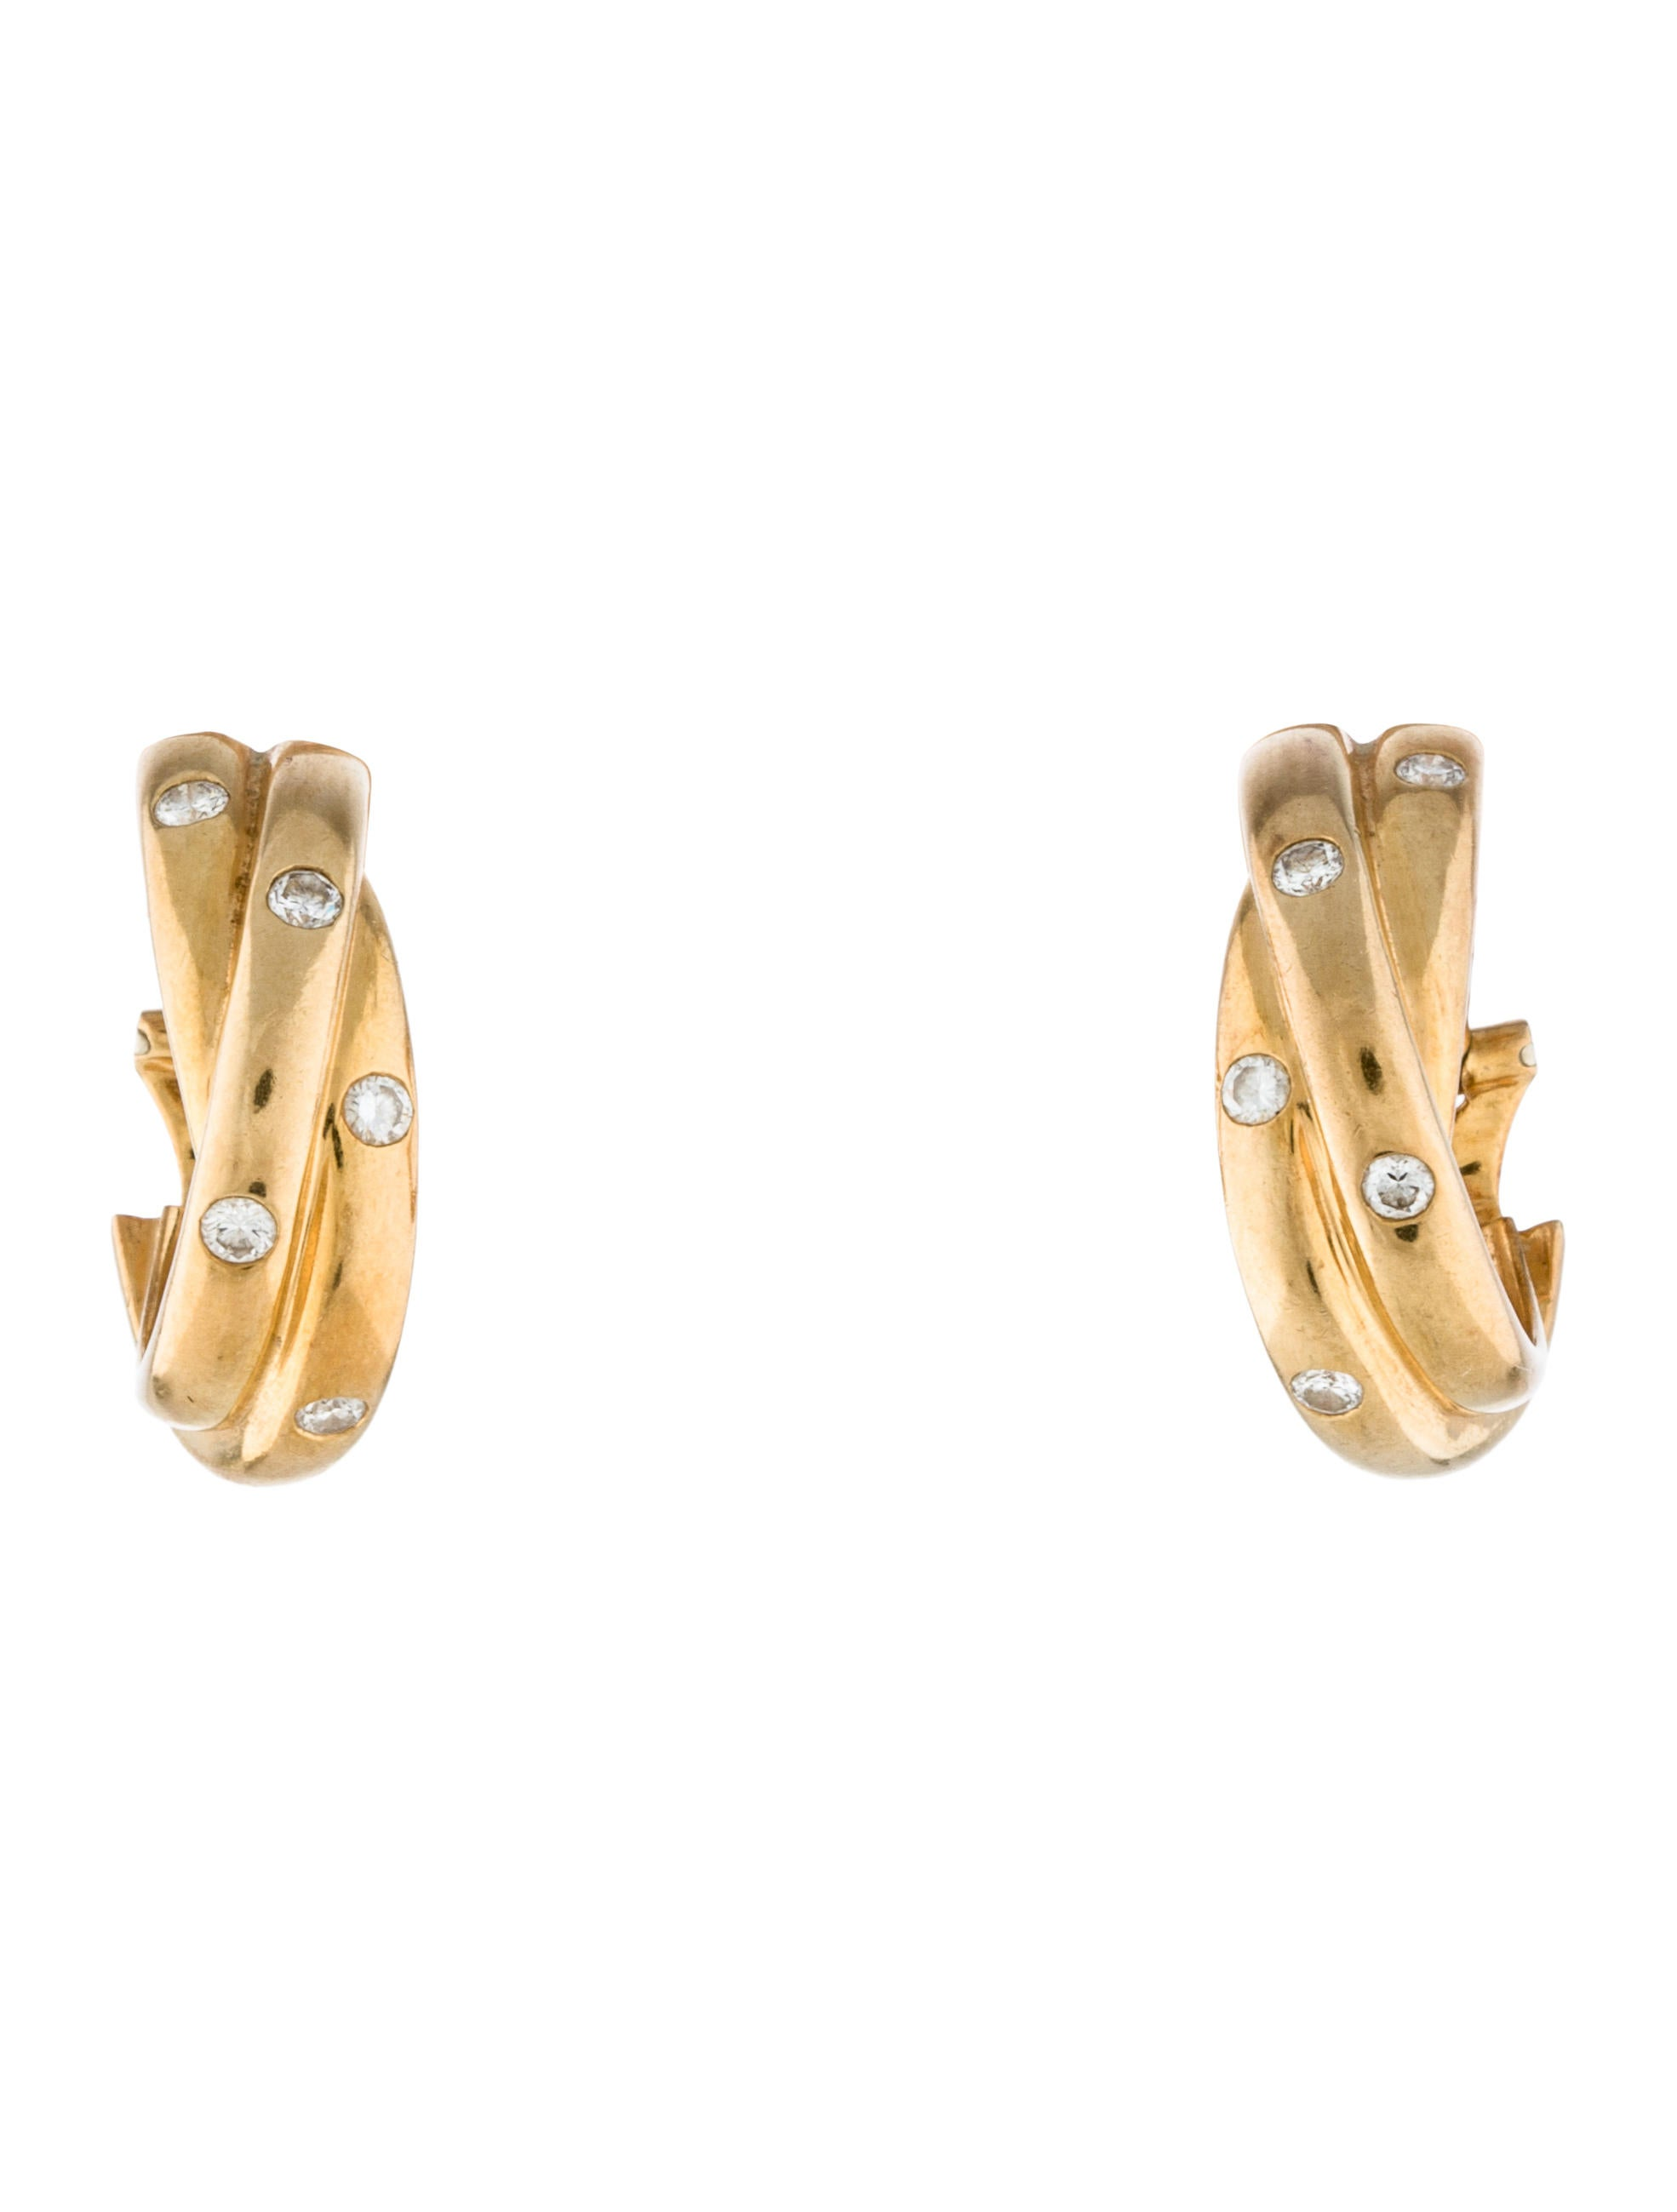 tone cartier gold trinity expertissim model earrings de three